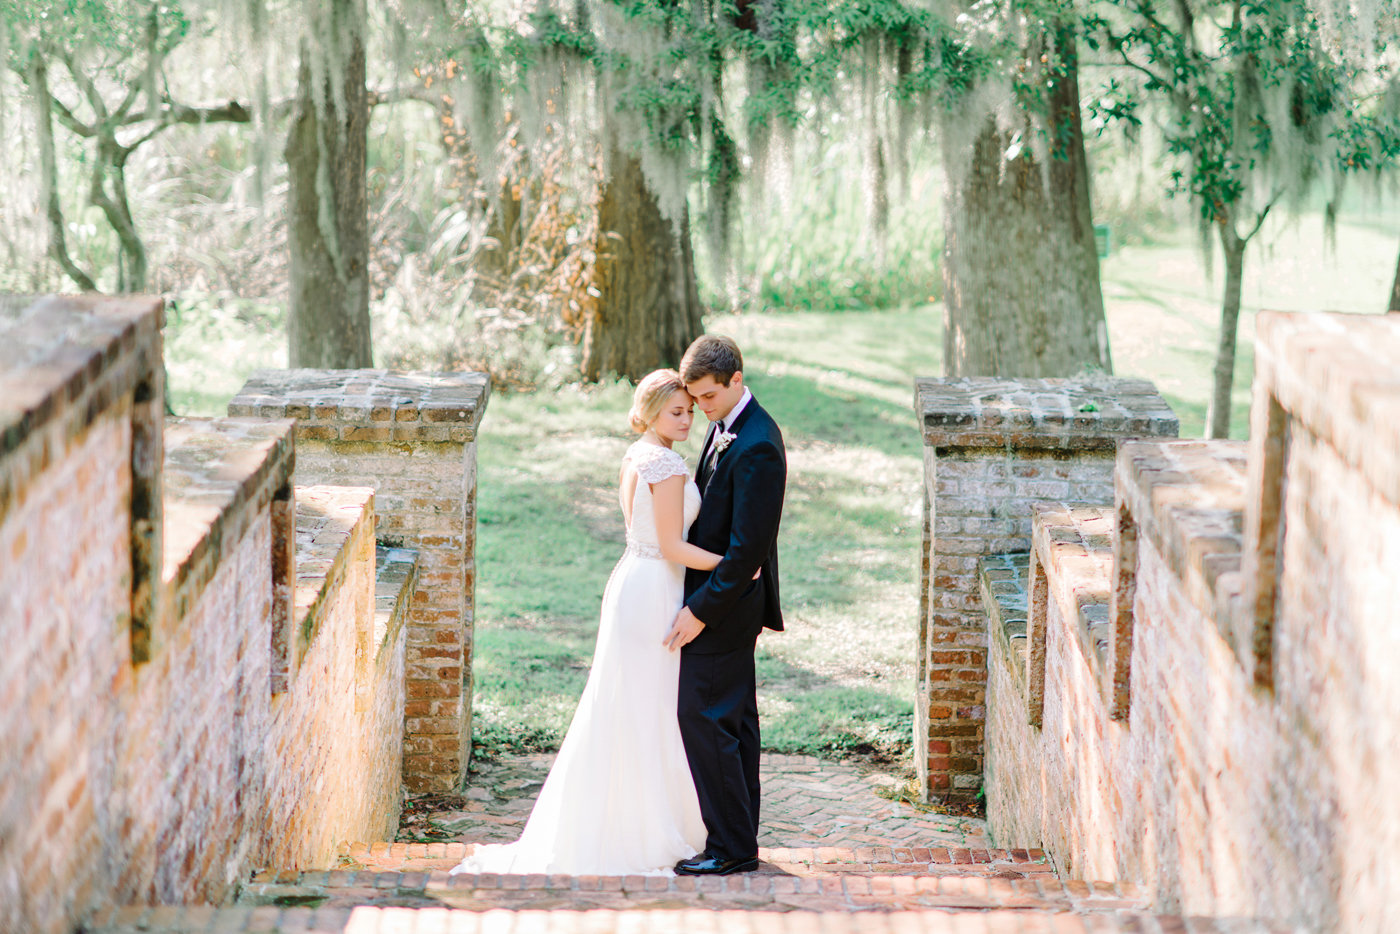 Wedding Photography in Myrtle Beach, South Carolina by Top Wedding Photographer